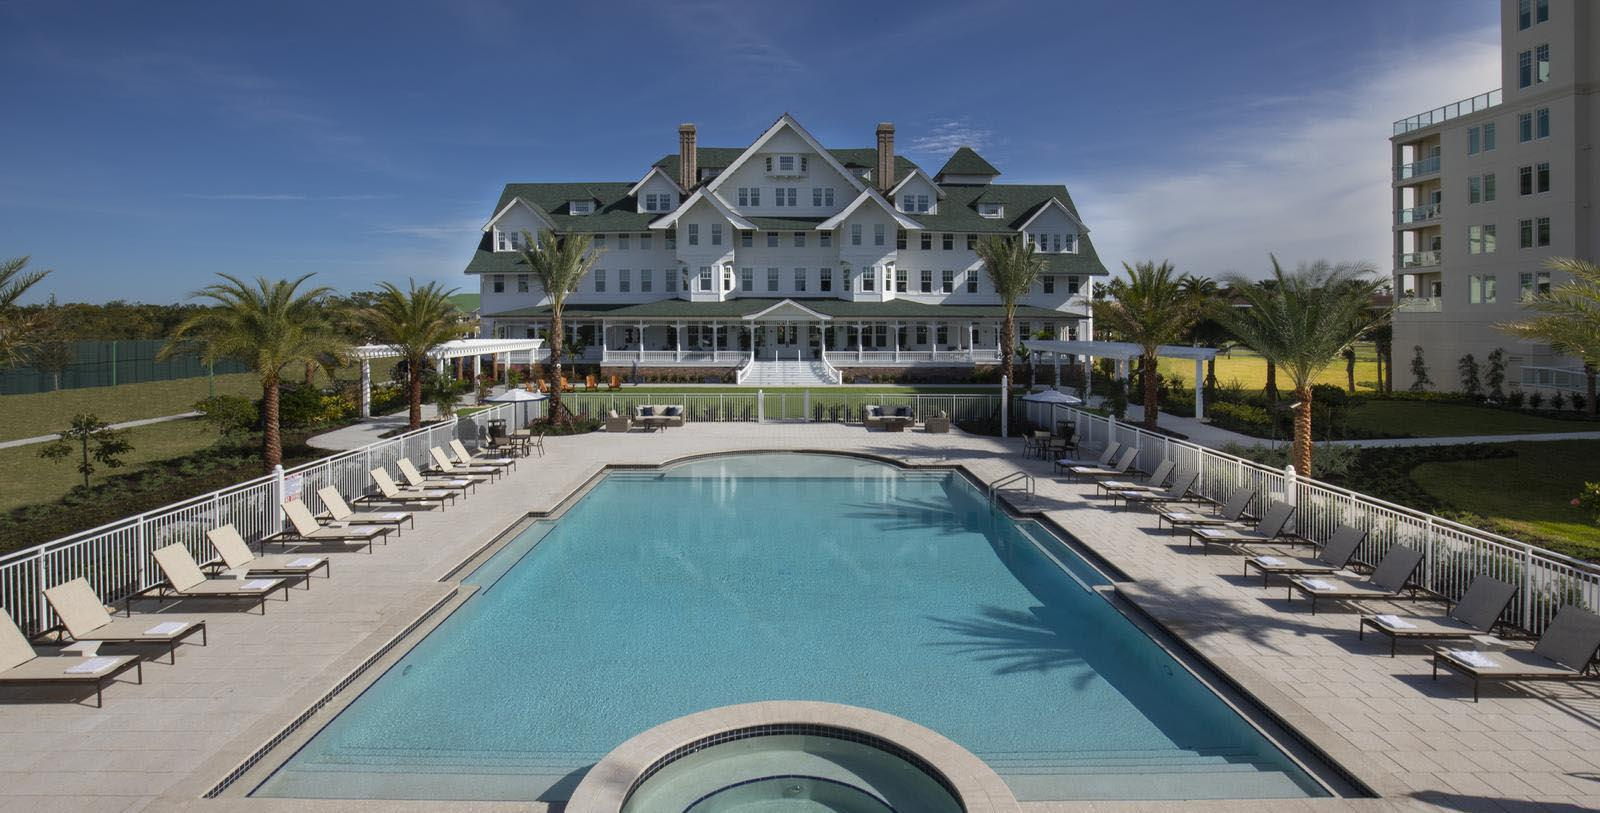 Image of Pool and hotel exterior at Belleview Inn, 1897, Member of Historic Hotels of America, in Belleair, Florida, Hot Deals